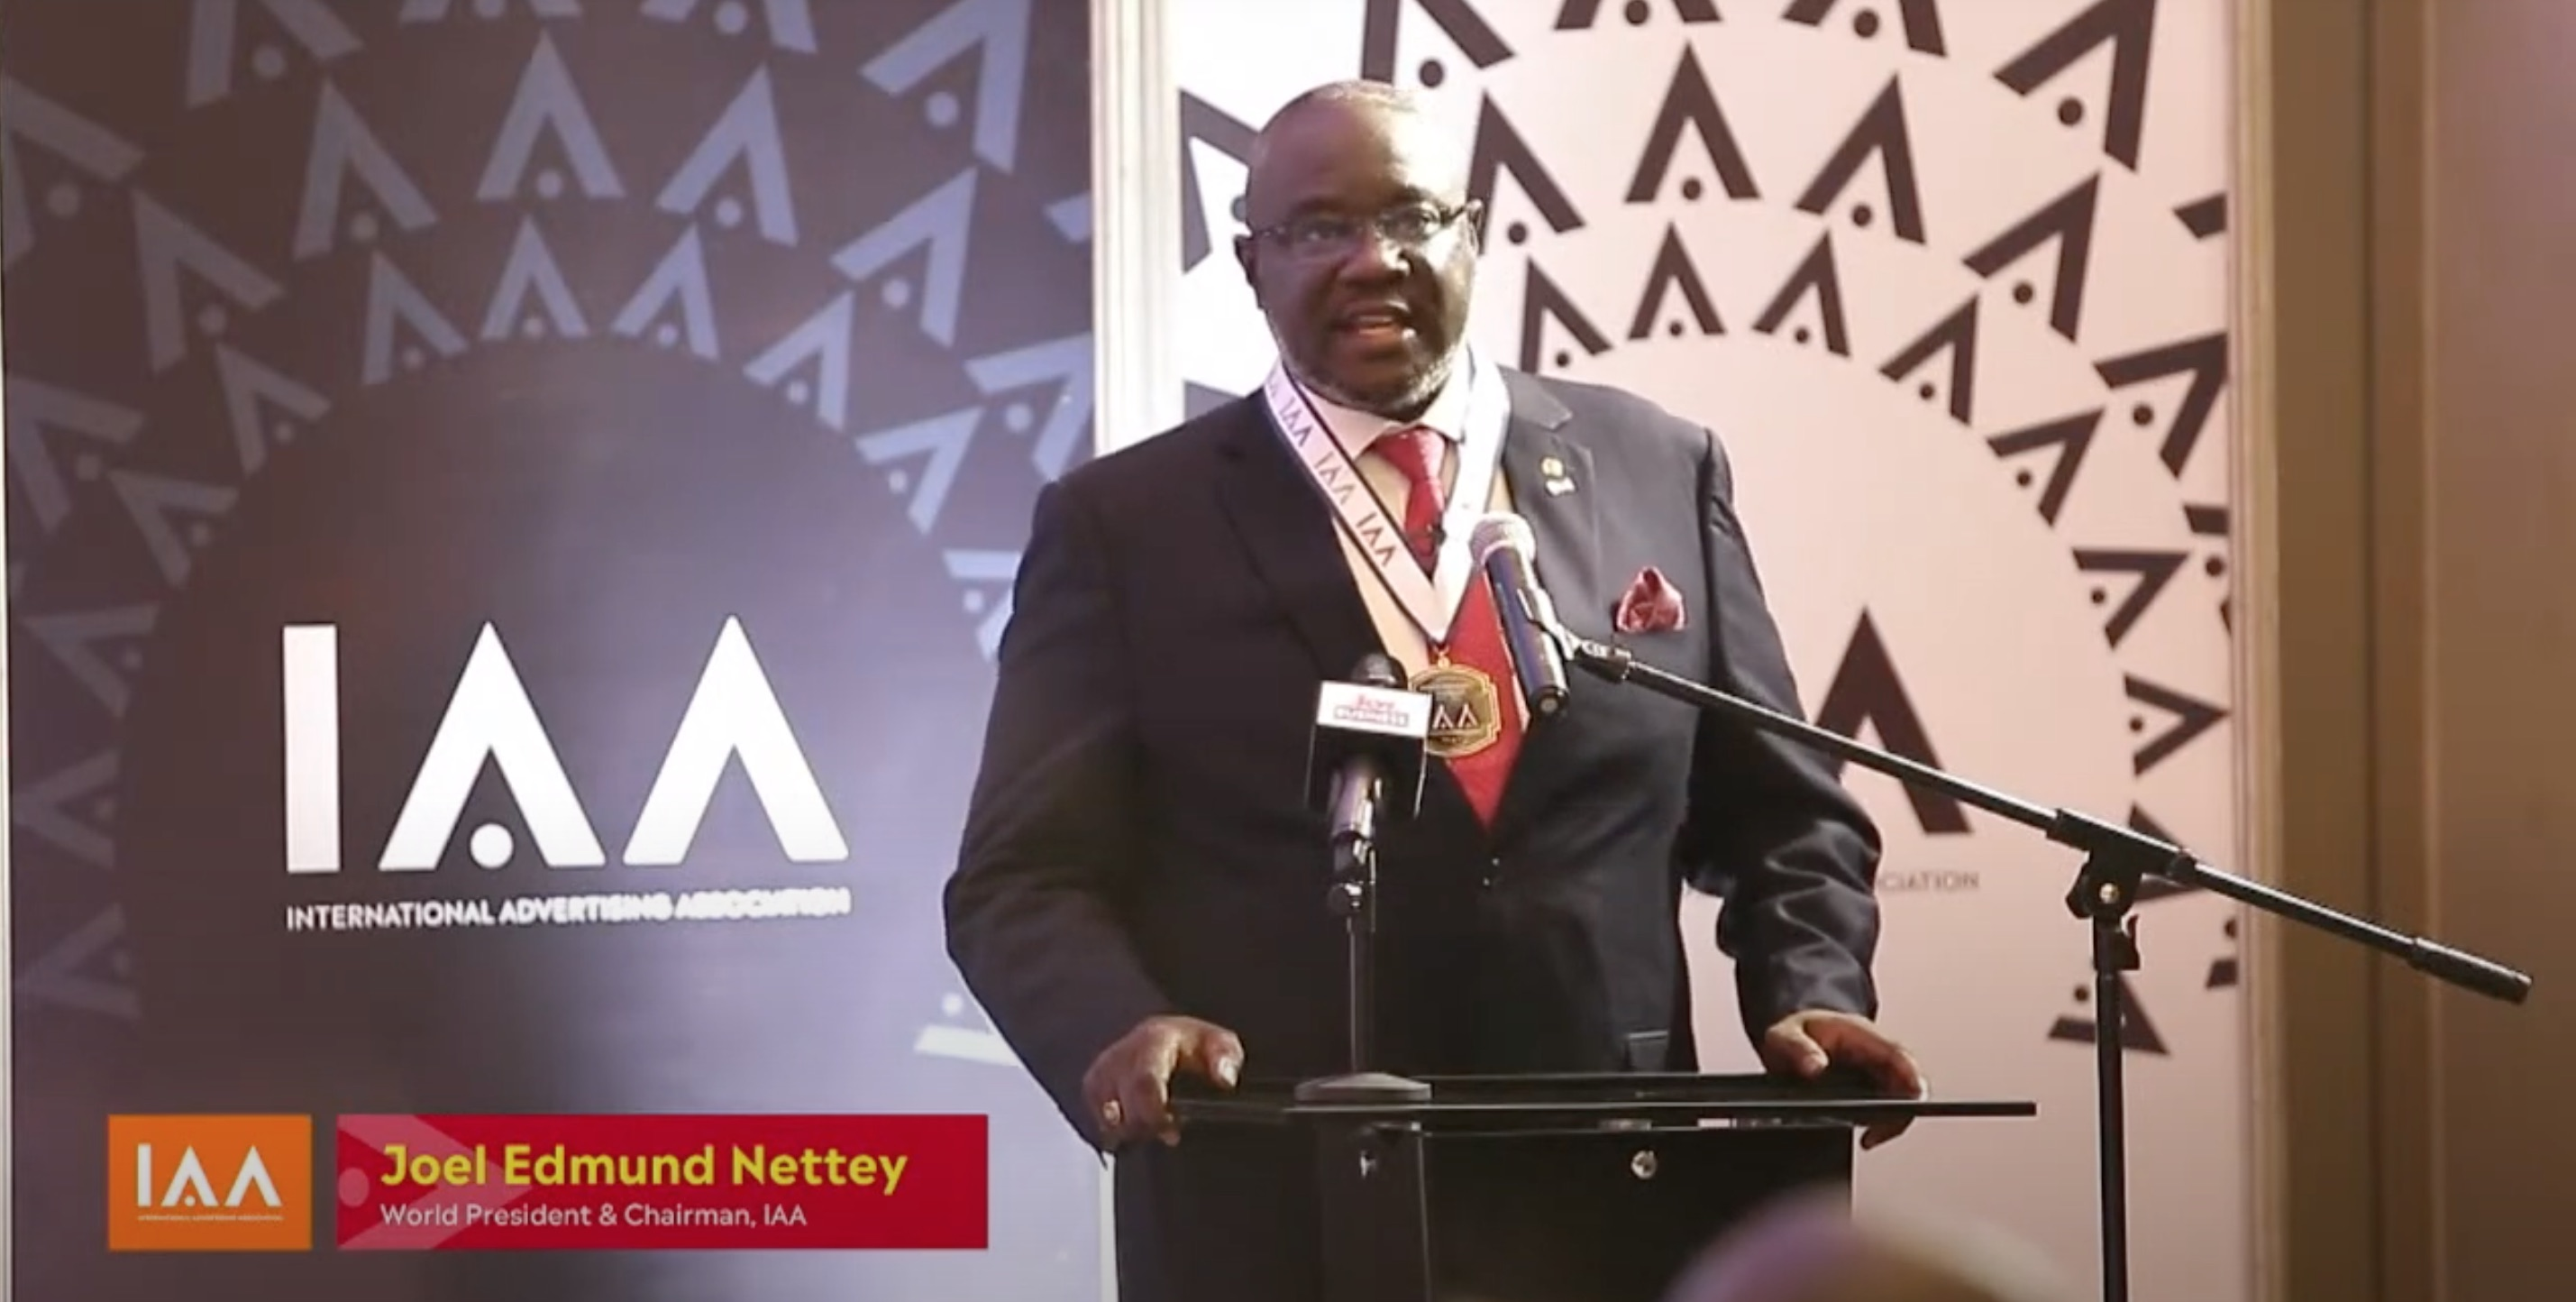 Joel Nettey becomes IAA Chairman and World President